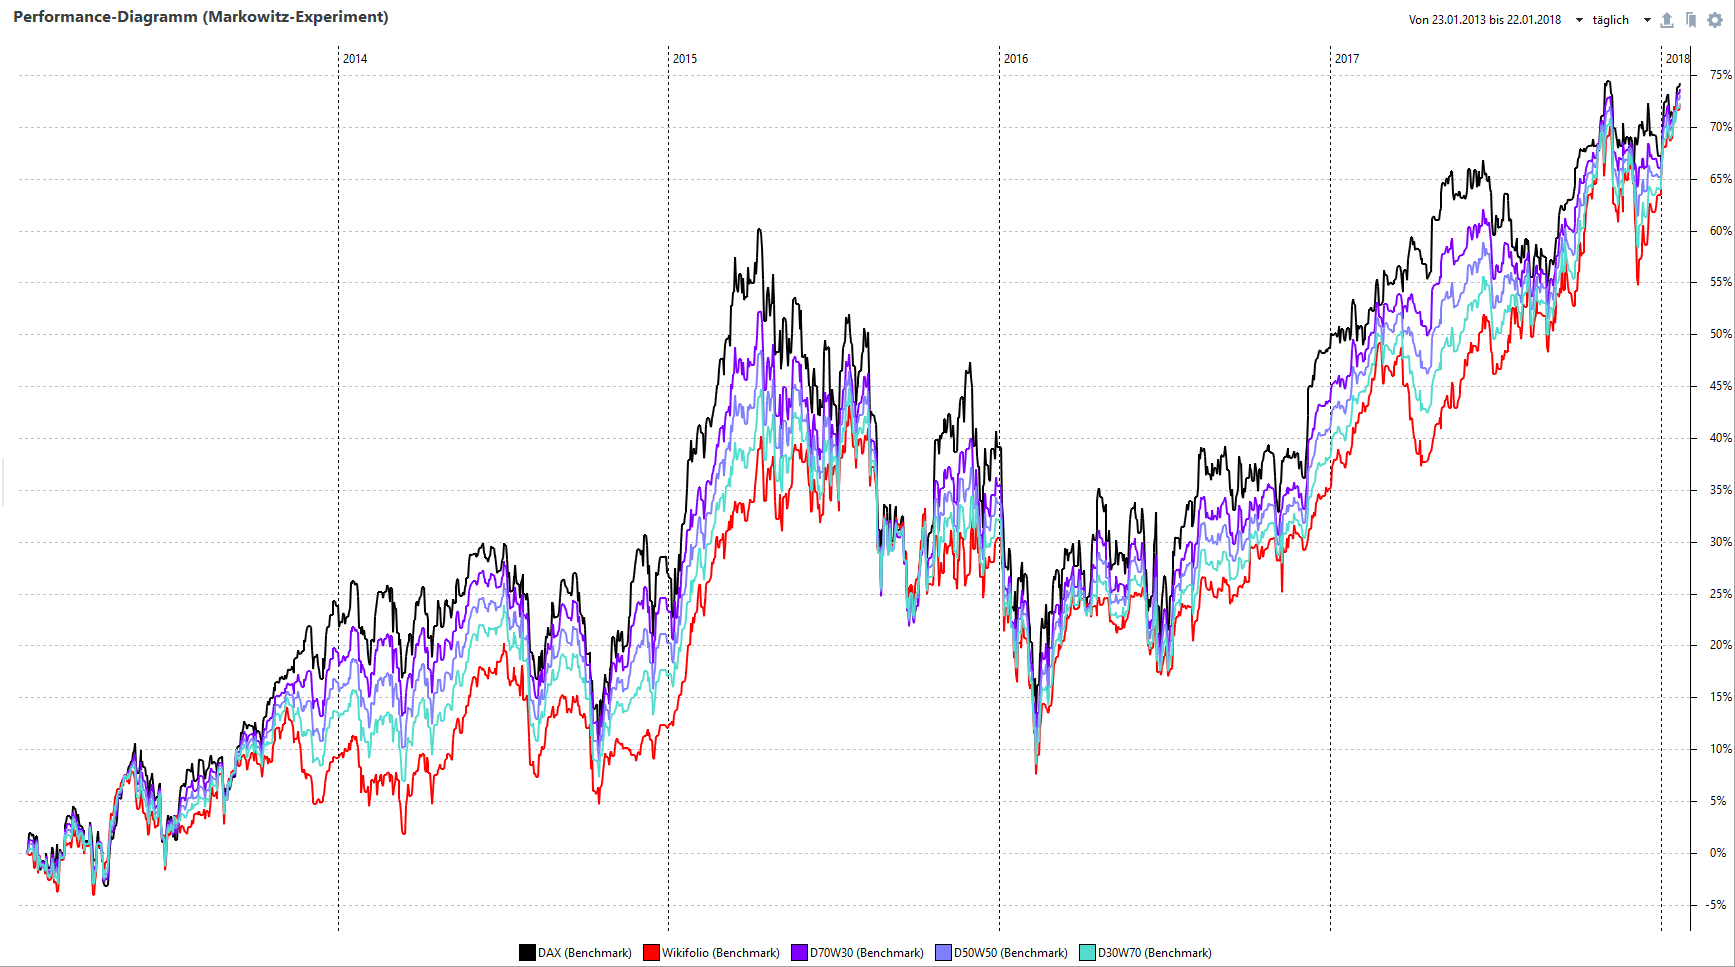 Performance-Diagramm, DAX/Wikifolio-Mix 5 Jahre